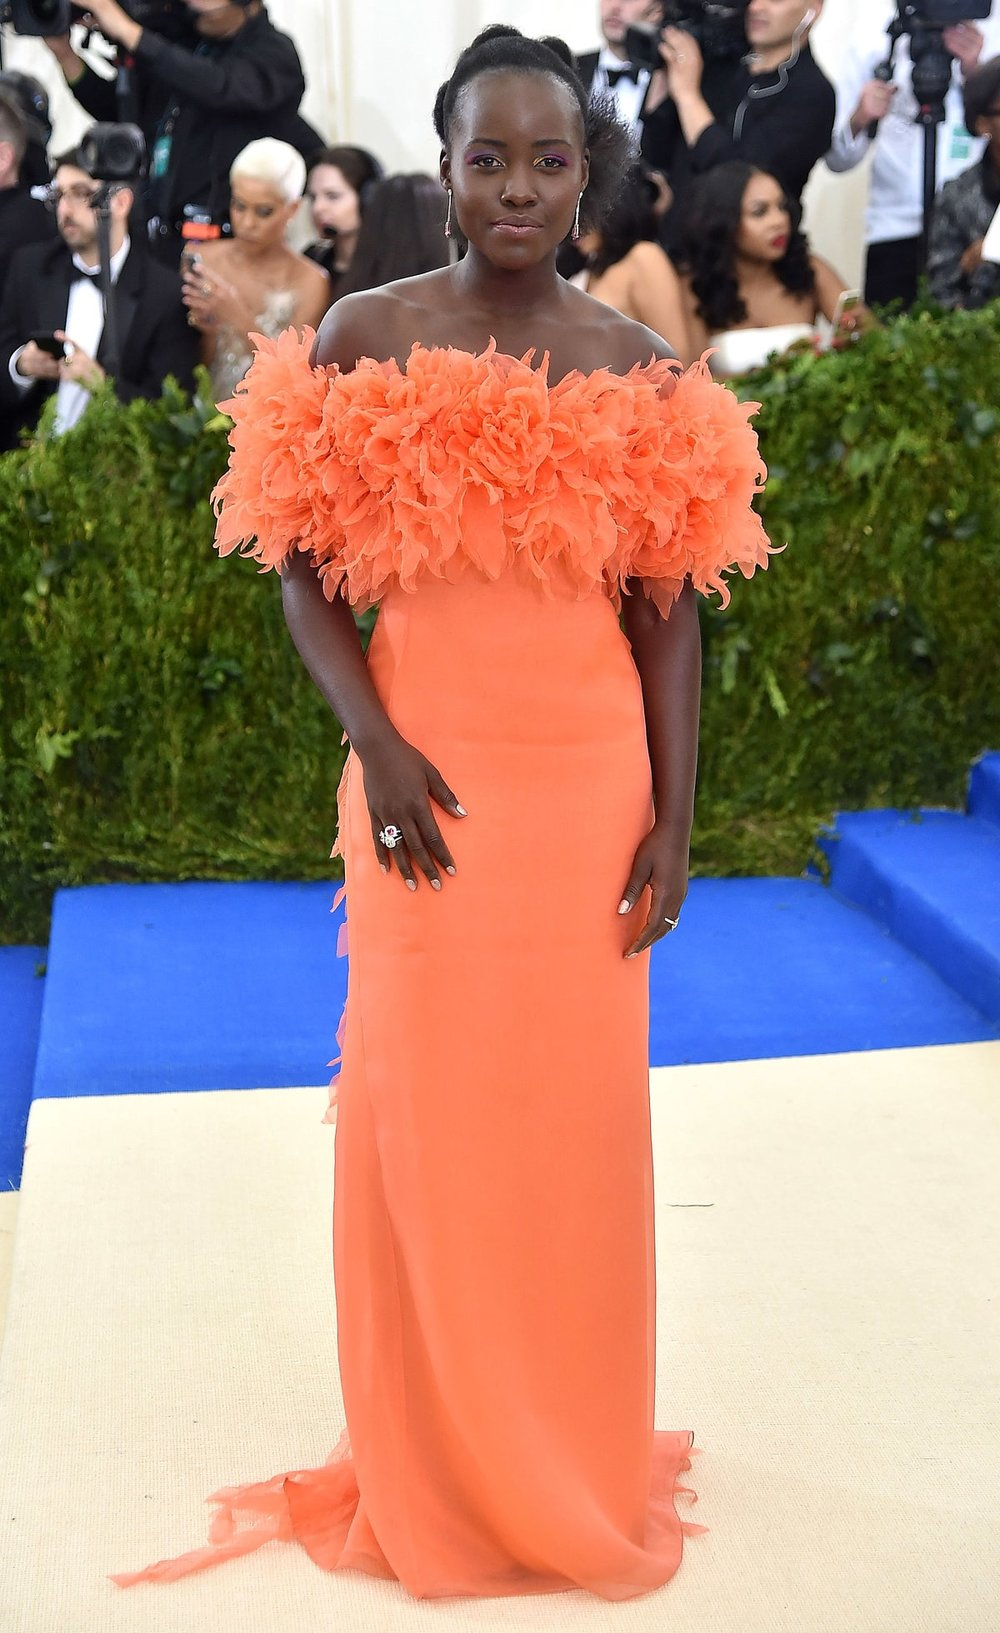 Lupita Nyong'o   in Prada.  The color is amazing. The silhouette is feminine and looks comfortable and soft despite it being a couture gown proving you don't have to be uncomfortable to deliver fashion. I'm not feeling the hair but who cares when everything else is so pretty!